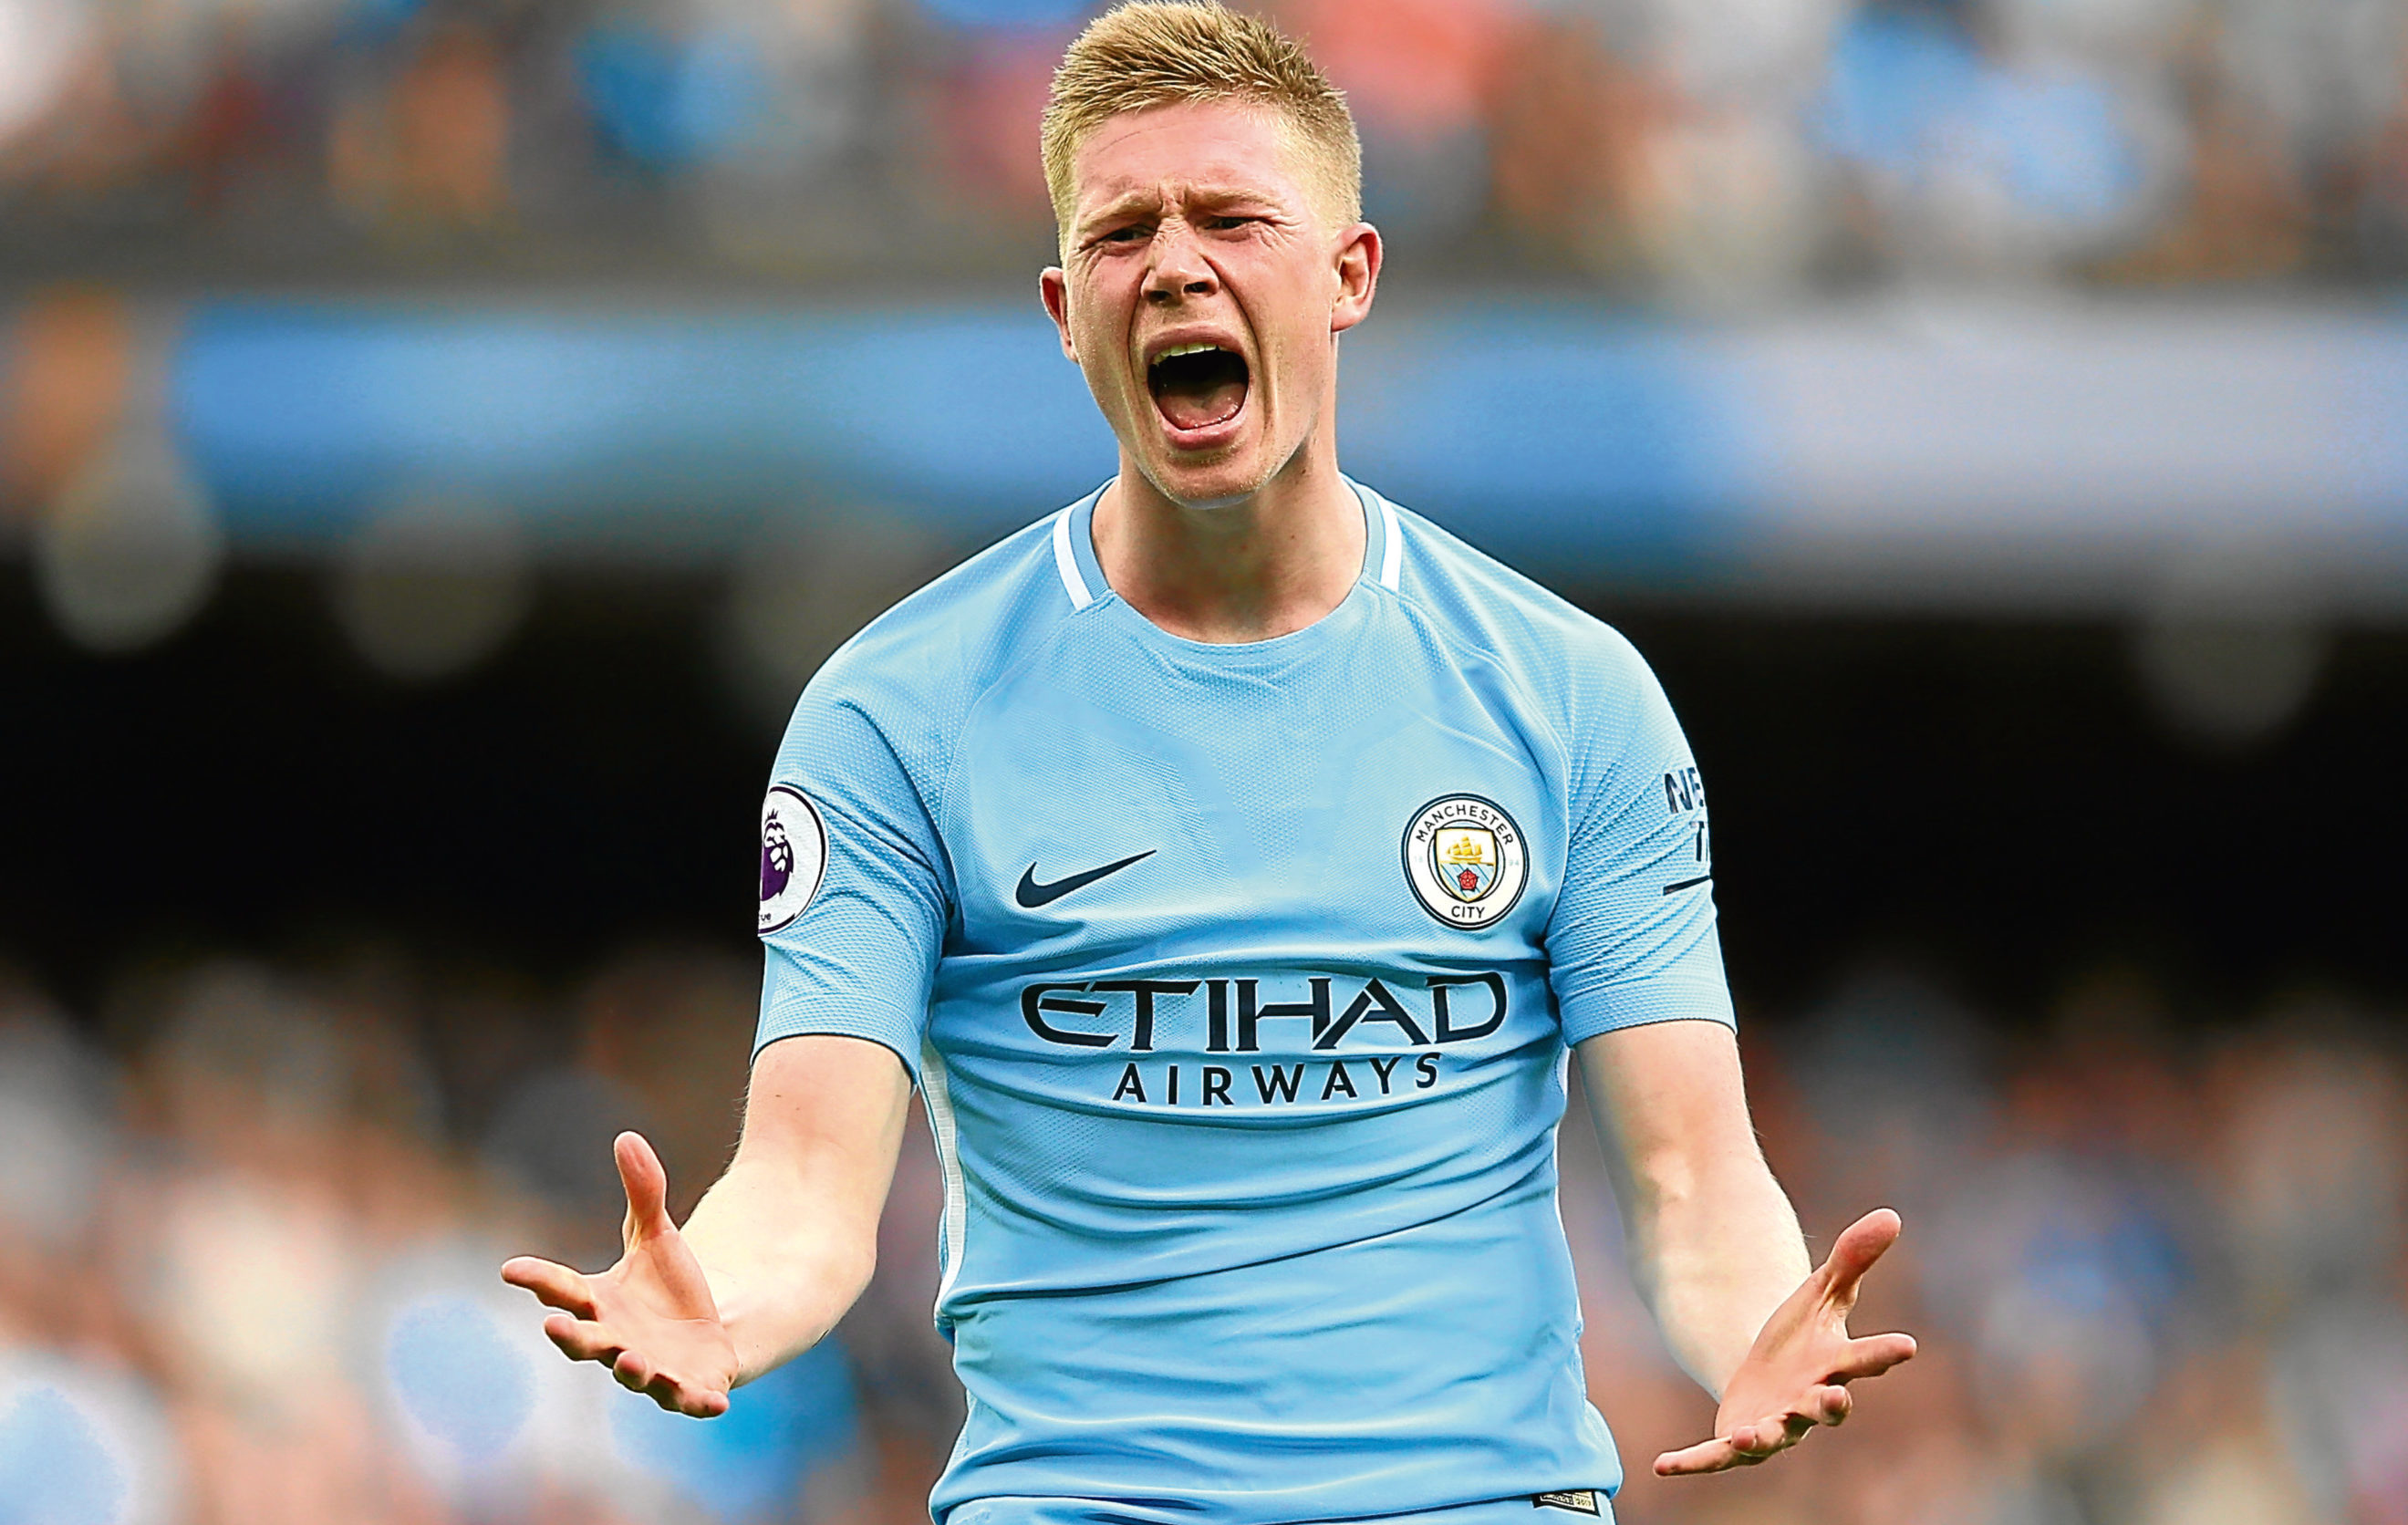 Kevin De Bruyne (Alex Livesey / Getty Images)